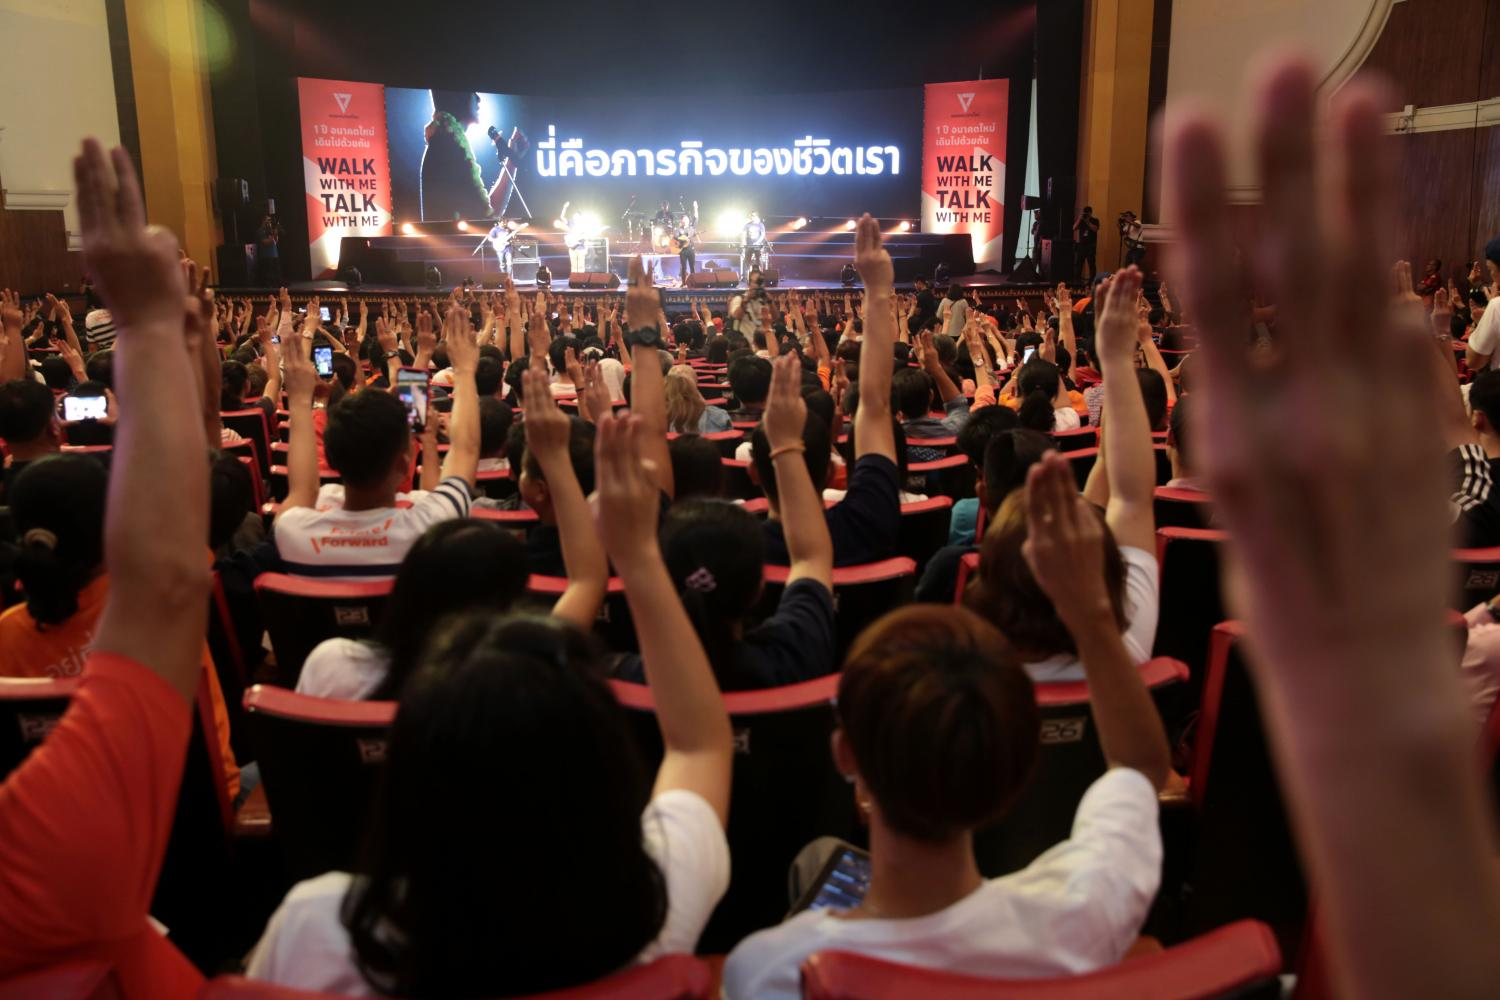 Supporters of the Future Forward Party on Saturday flash a three-finger salute inside a hall at Thammasat University's Tha Prachan campus, where the party organised an event to mark the first anniversary of its founding. (Photo by Chanat Katanyu)